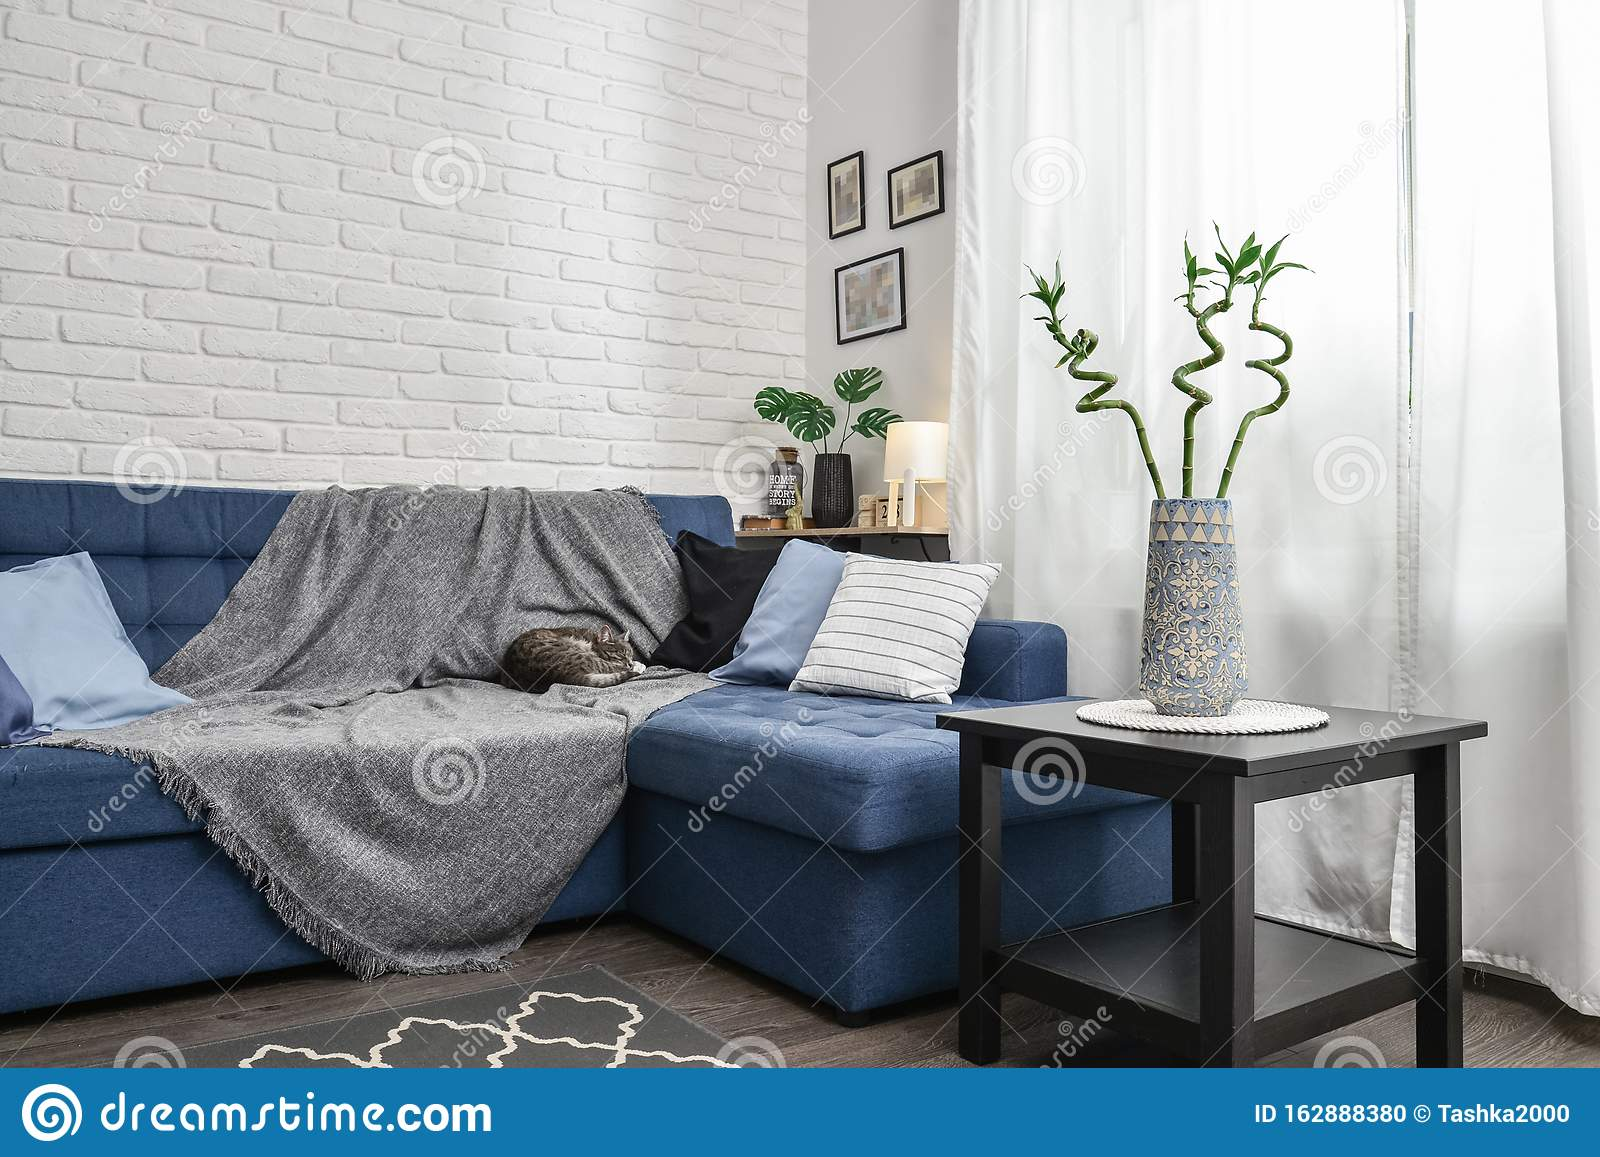 Image of: Bright Living Room In Scandinavian Style Stock Photo Image Of Couch Family 162888380